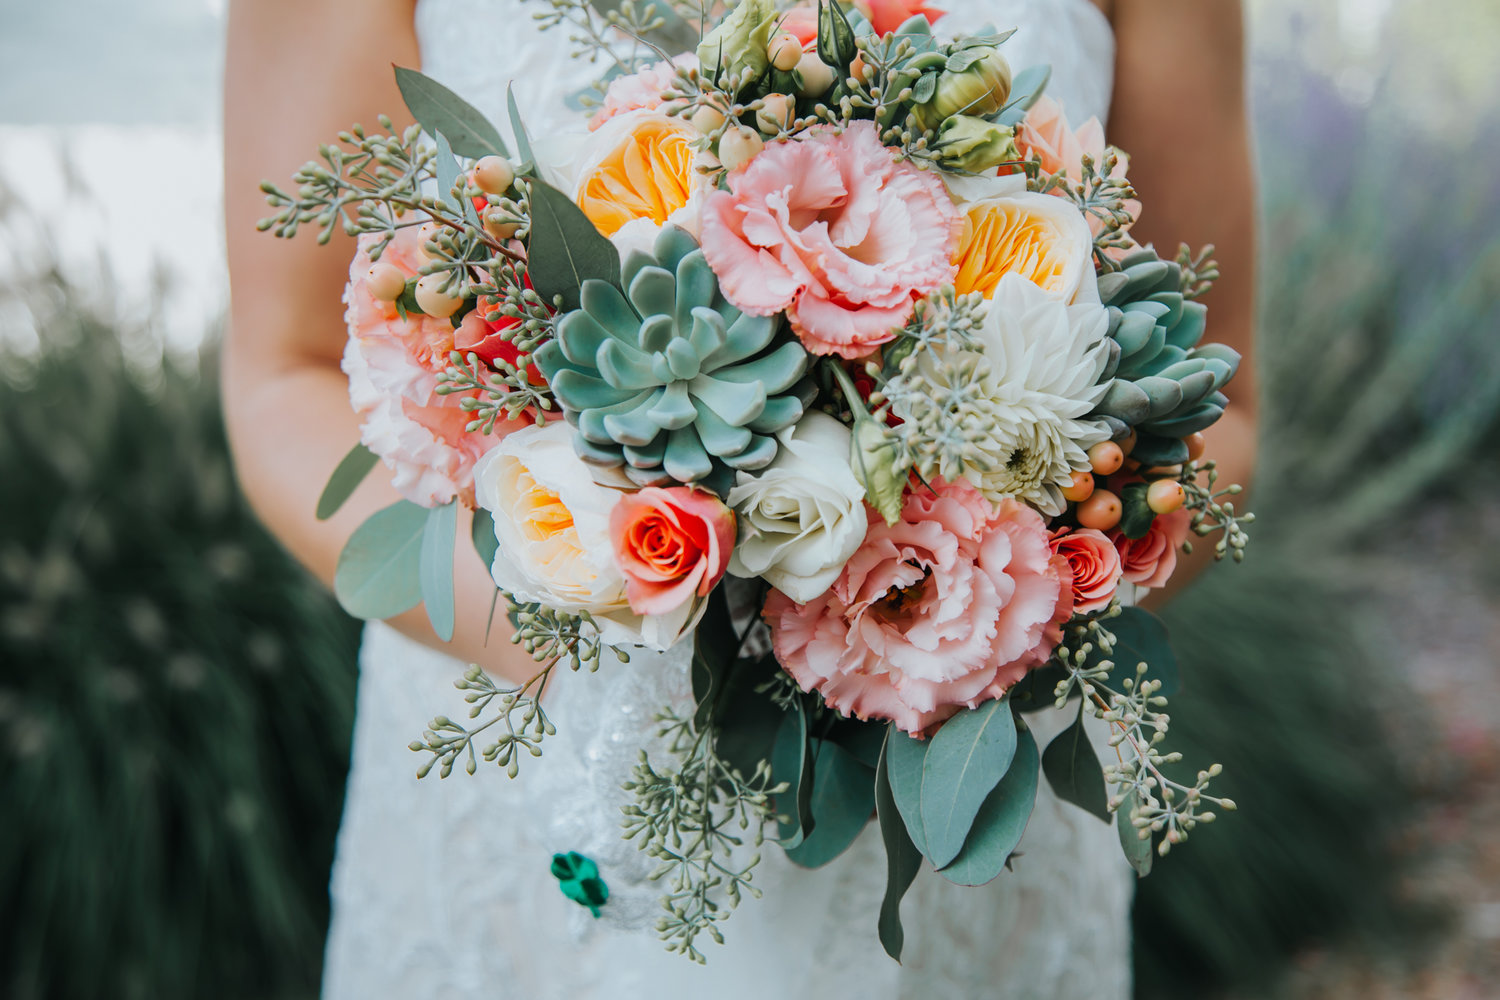 Bridesmaids bouquets start at $65 each    Bridal bouquets start at $200 each